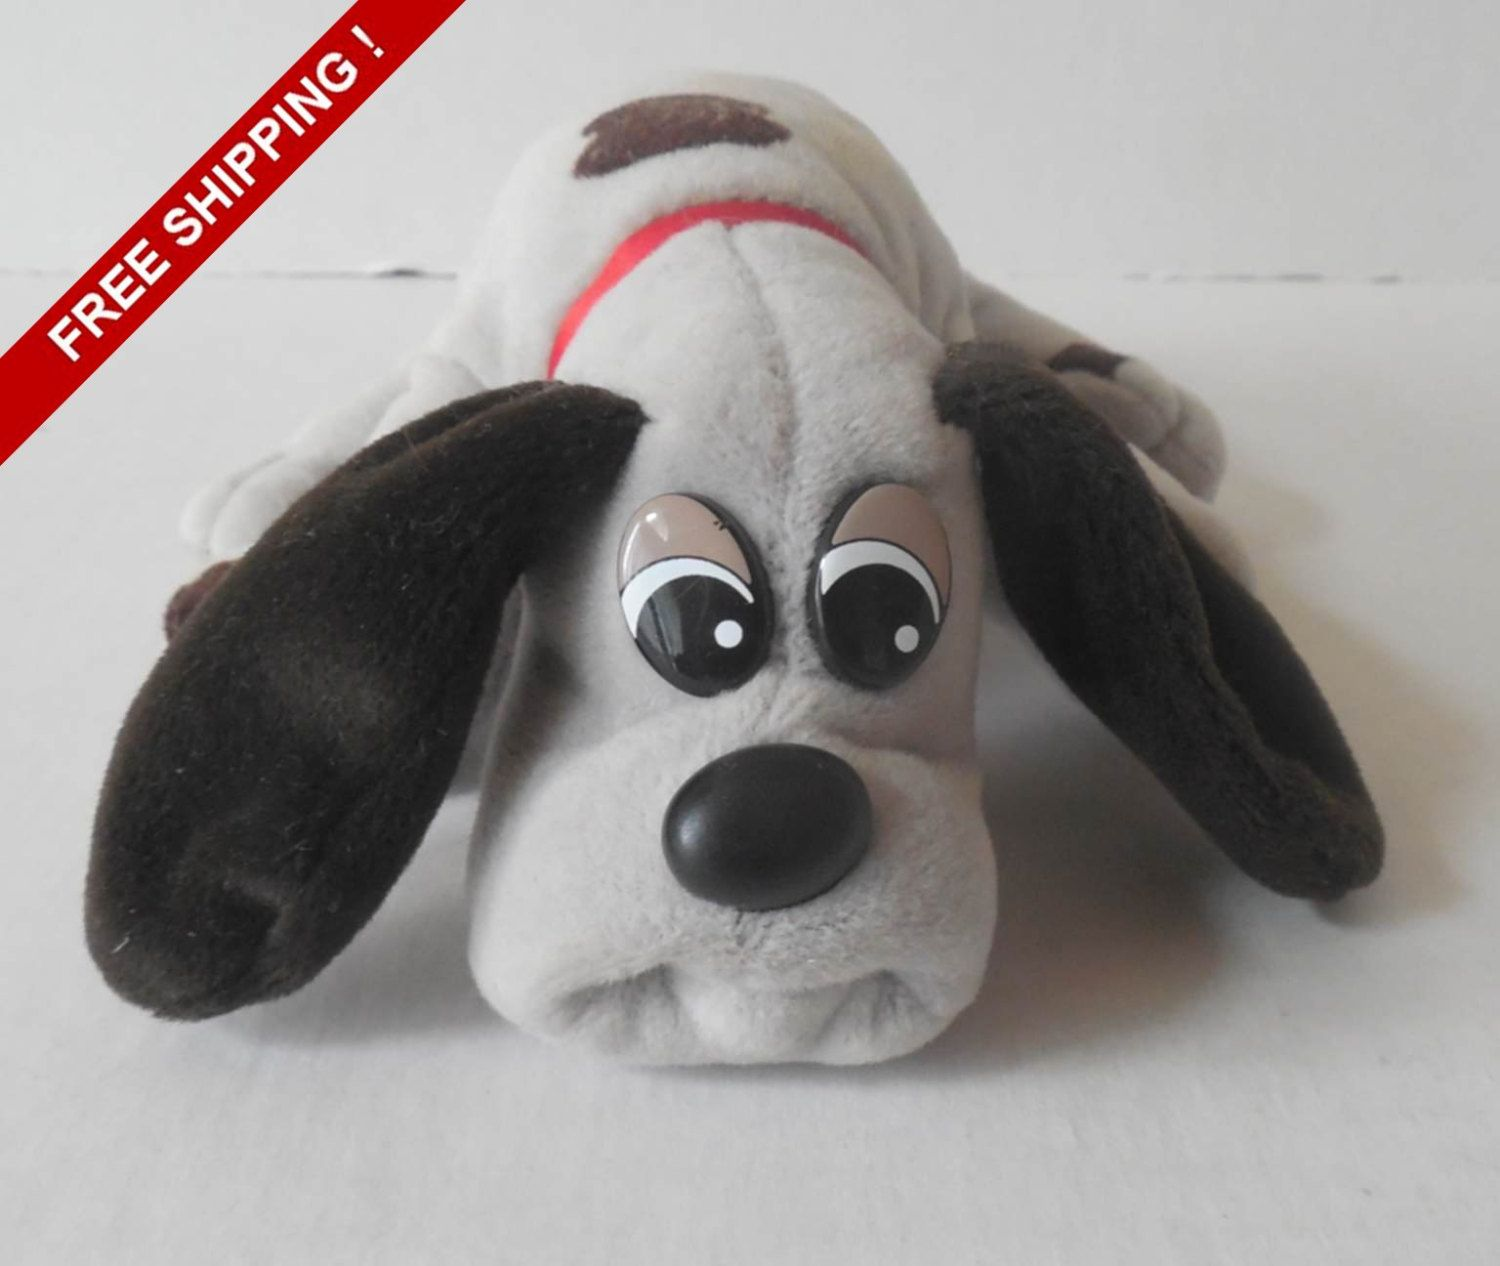 Vintage 1980s Mini Pound Puppy by Tonka by VintageSistersx2 on